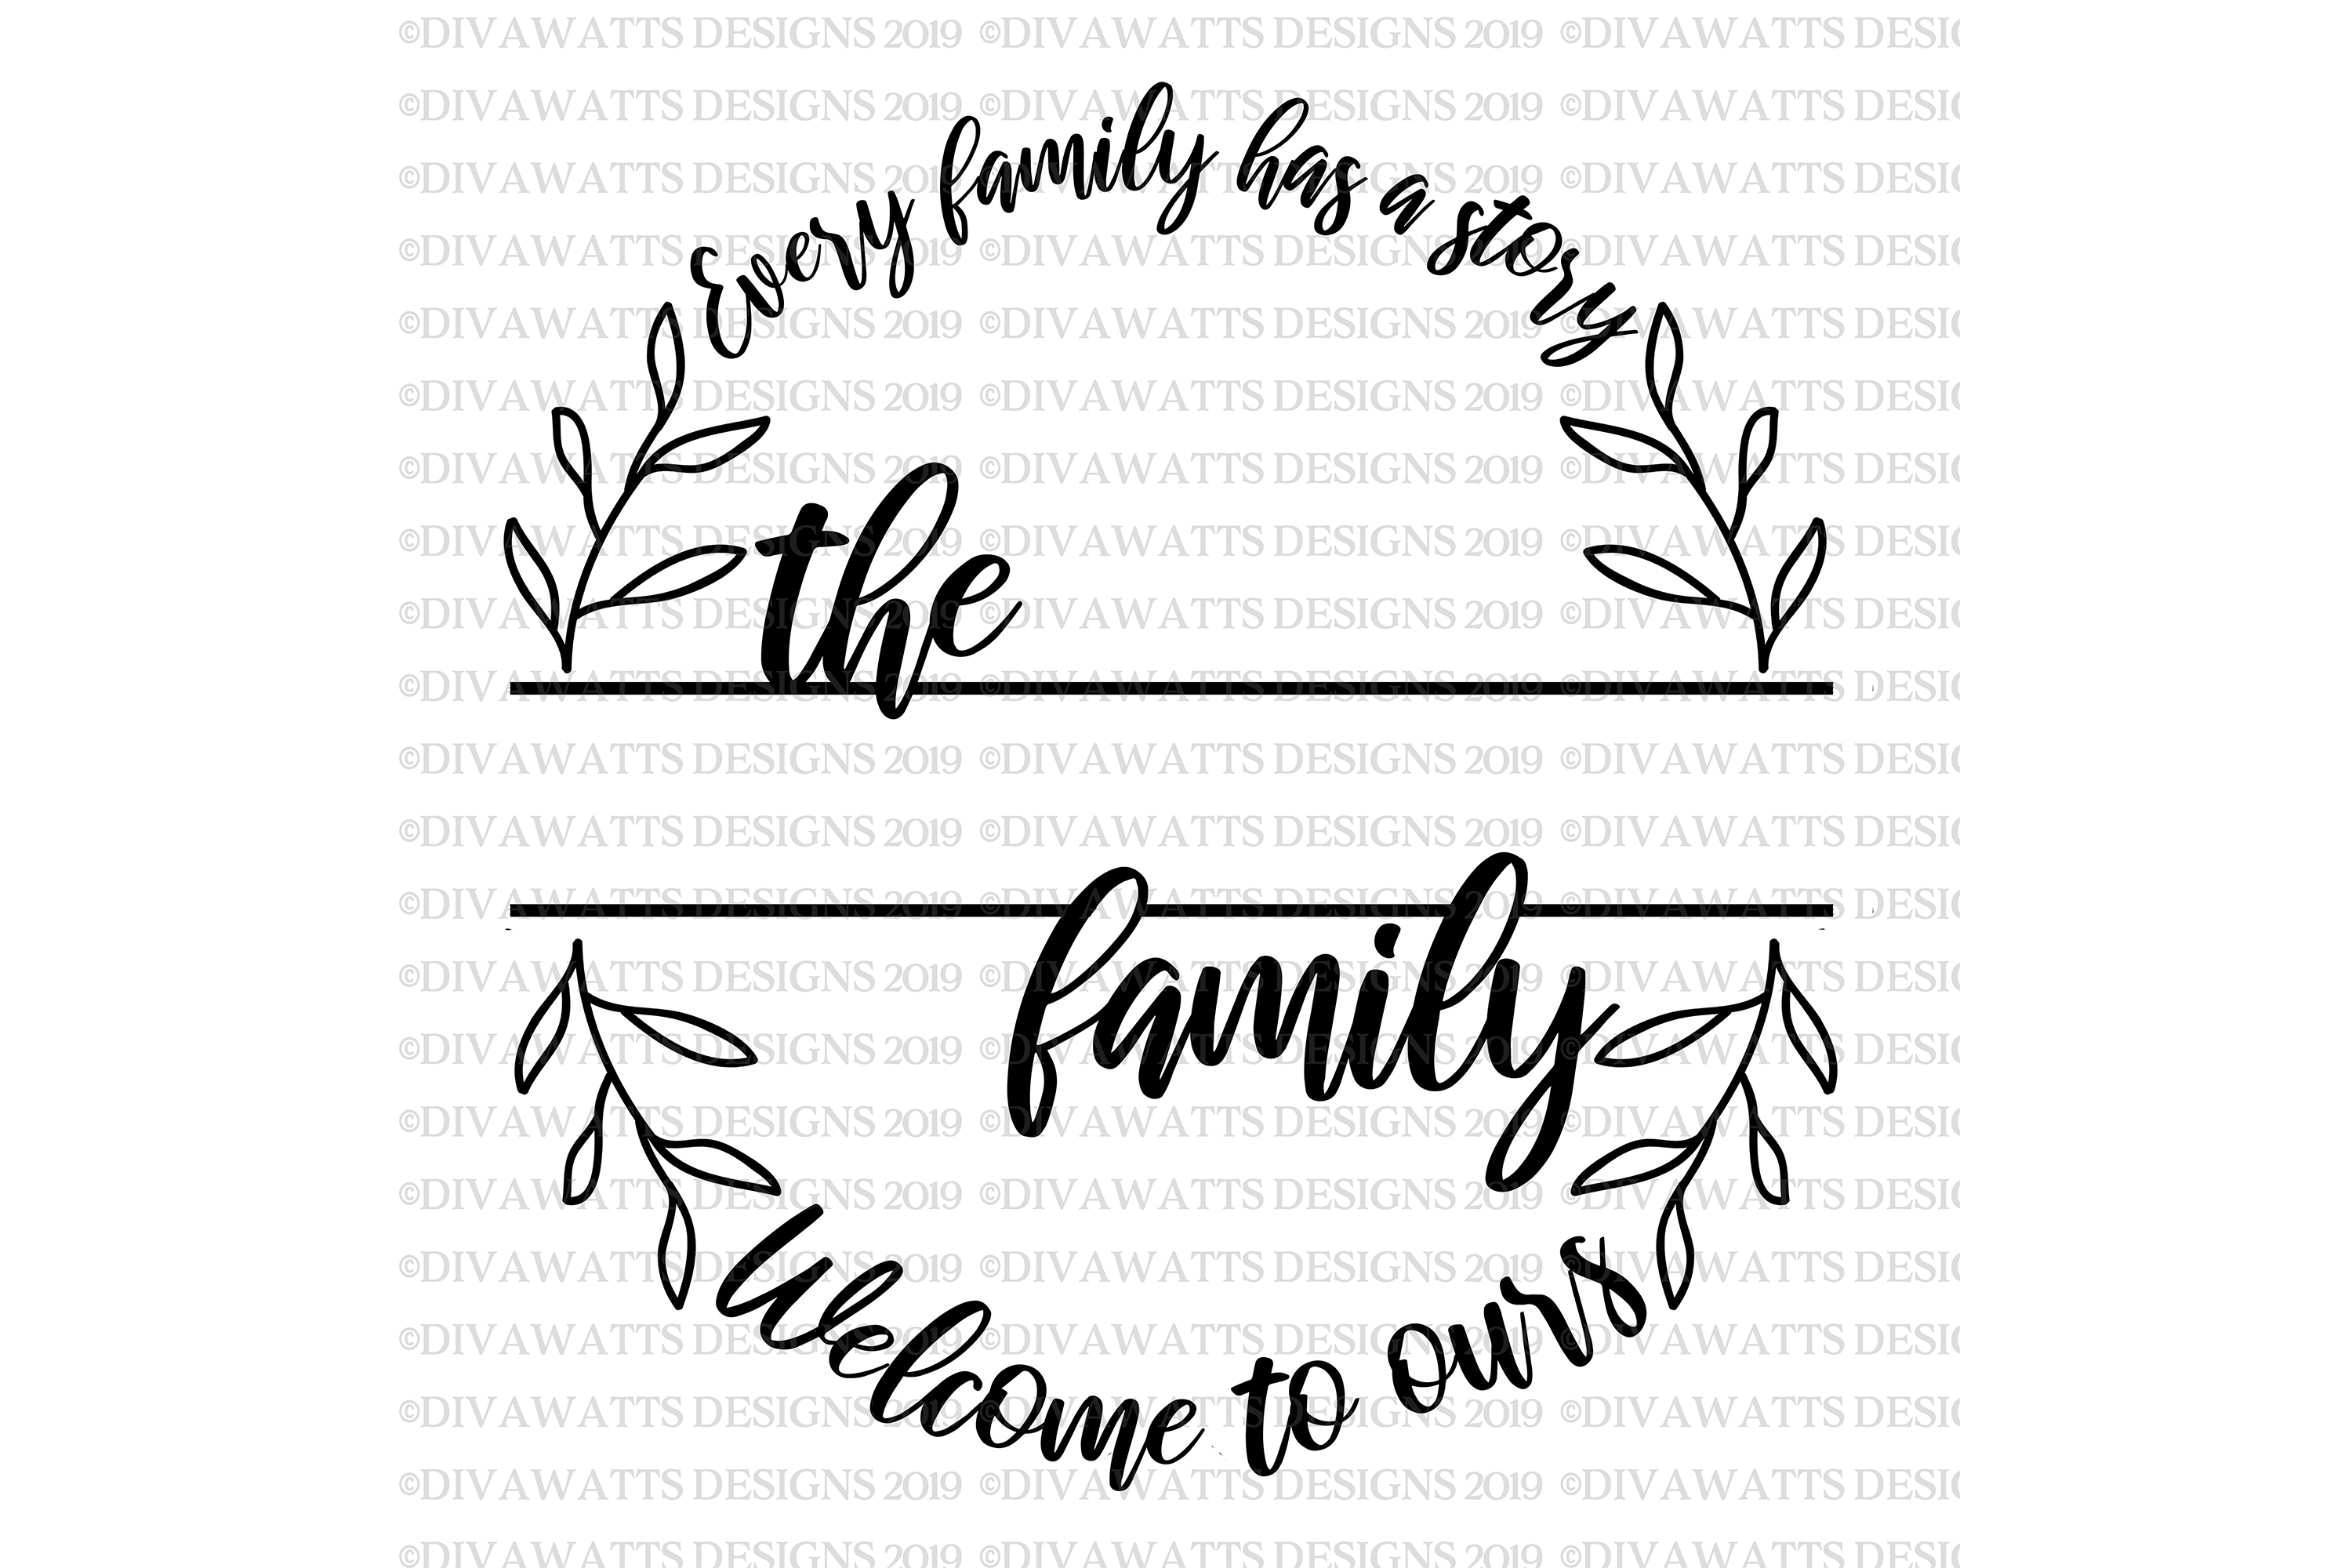 Every Family Has A Story Welcome To Ours - Last Name SVG example image 3